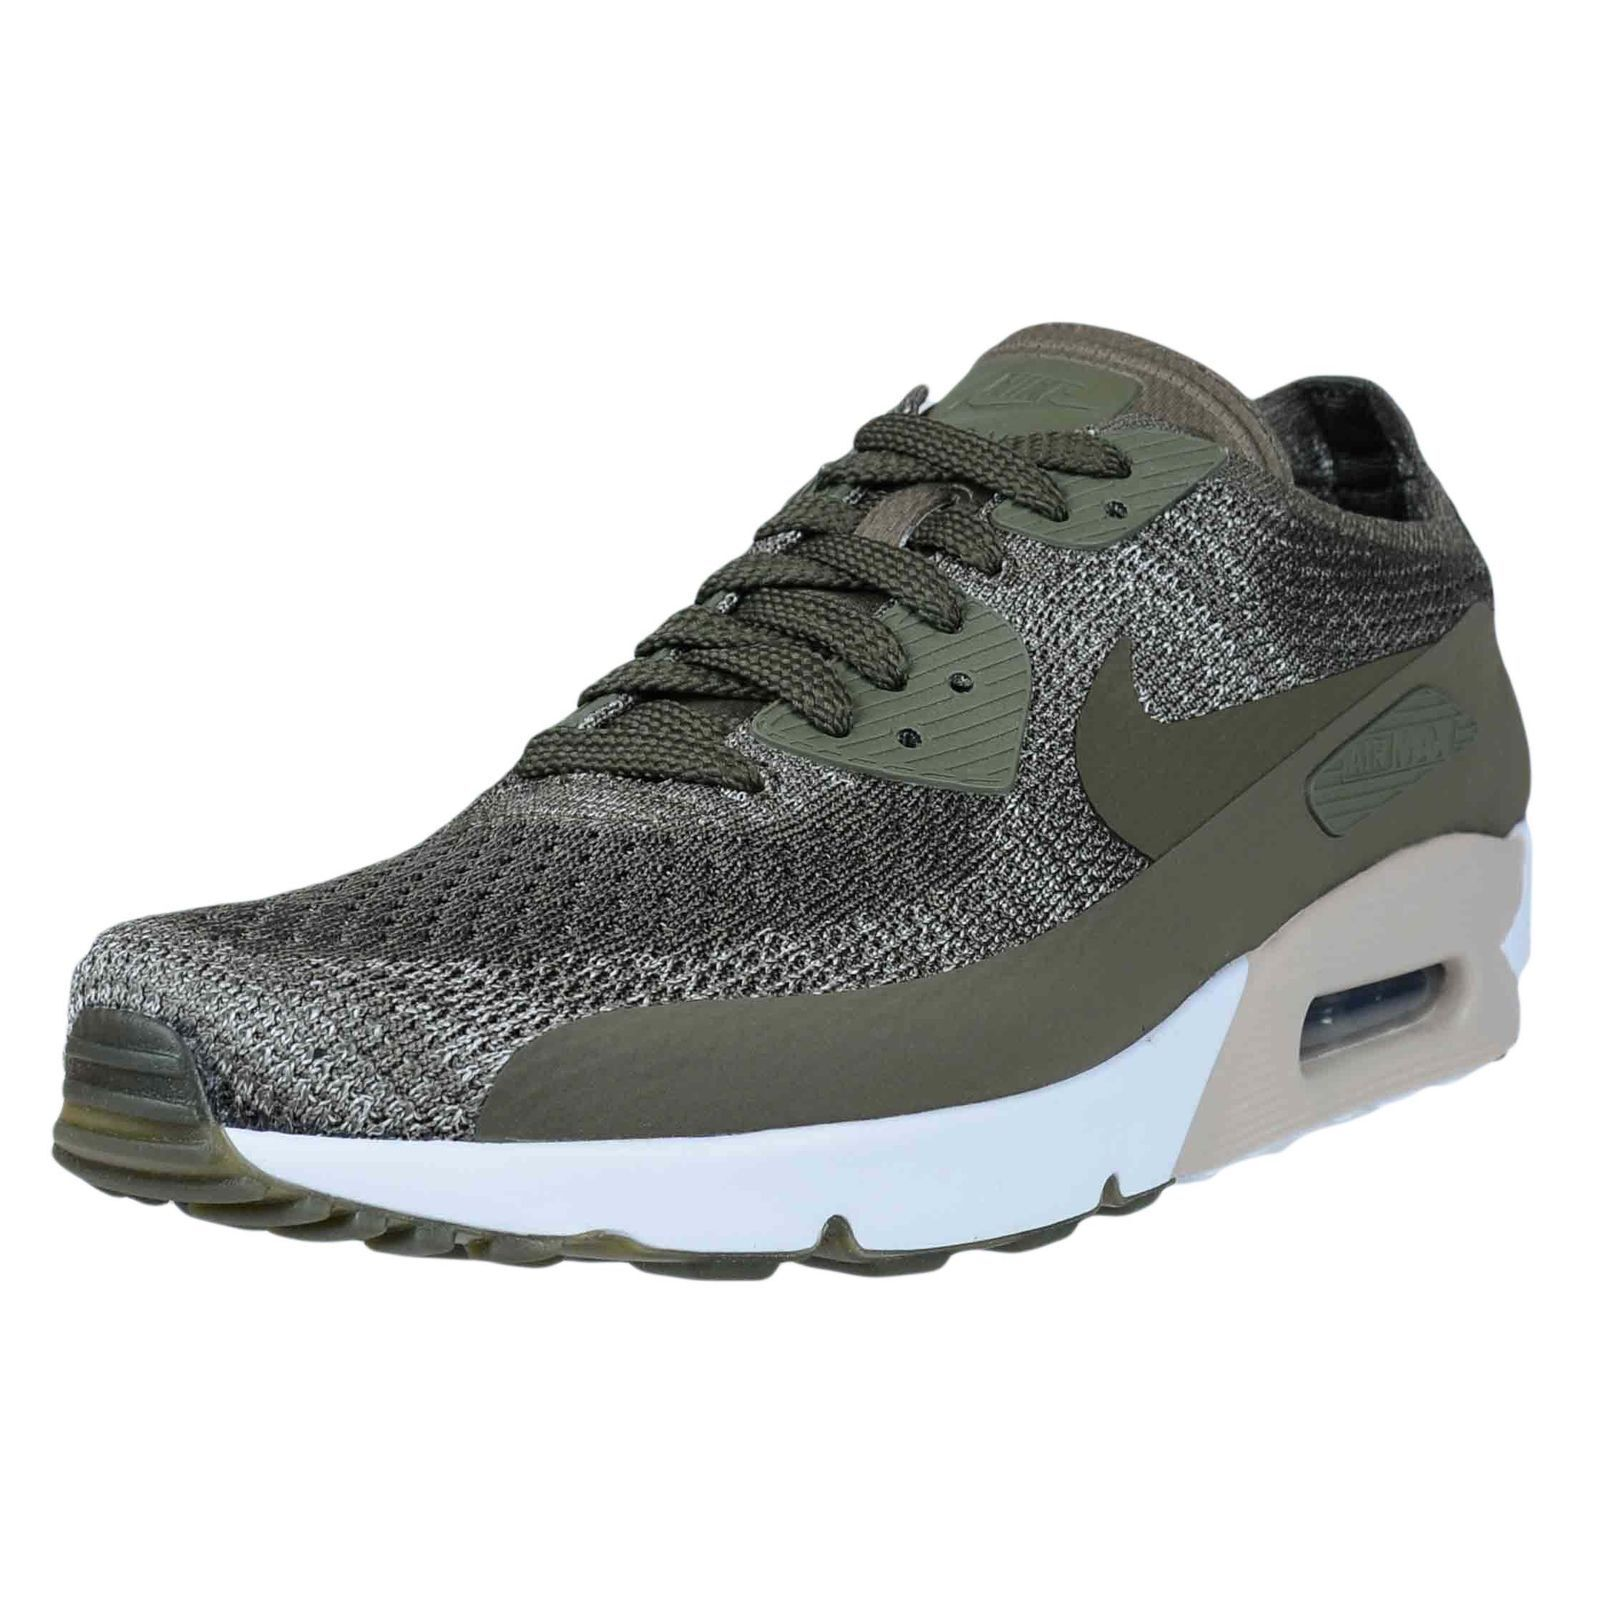 save off 919d6 0339d New Nike Air Max 90 Ultra 2.0 Flyknit Men's Running Shoes Olive Green  875943 200